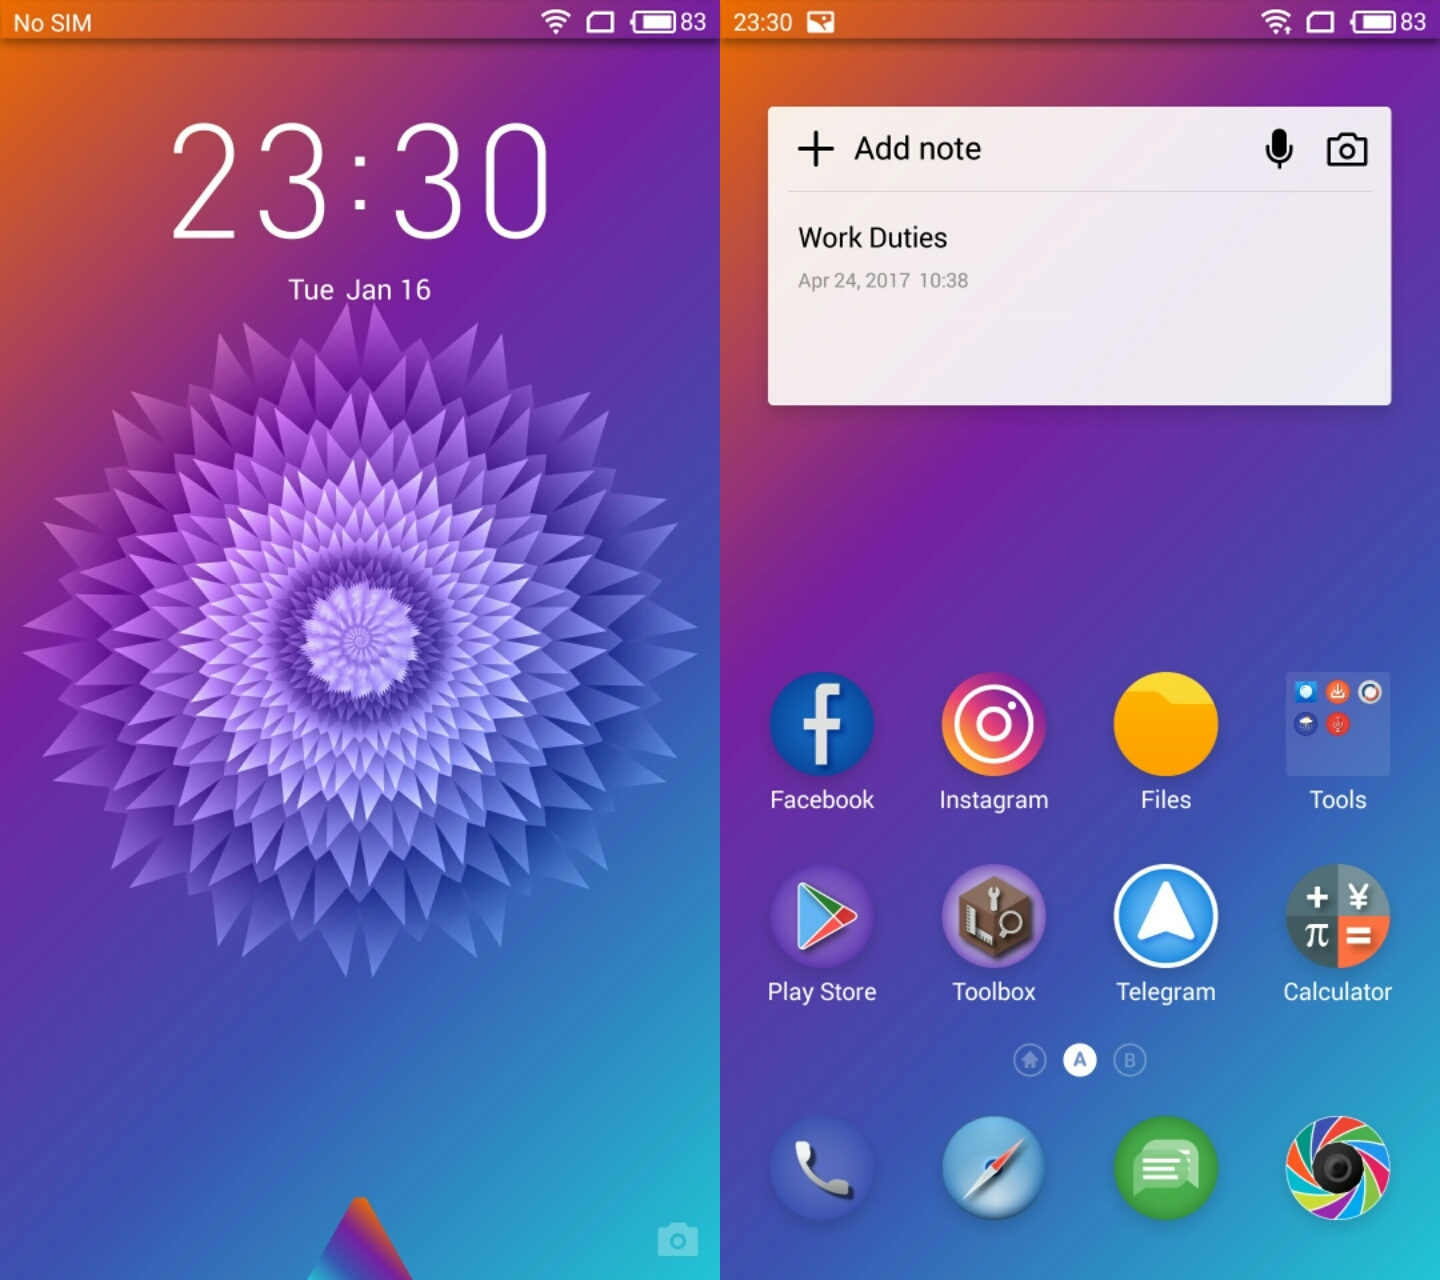 Updated-Wallpapers] Meizu Pro 7 Stock Theme for all Meizu Phones (G